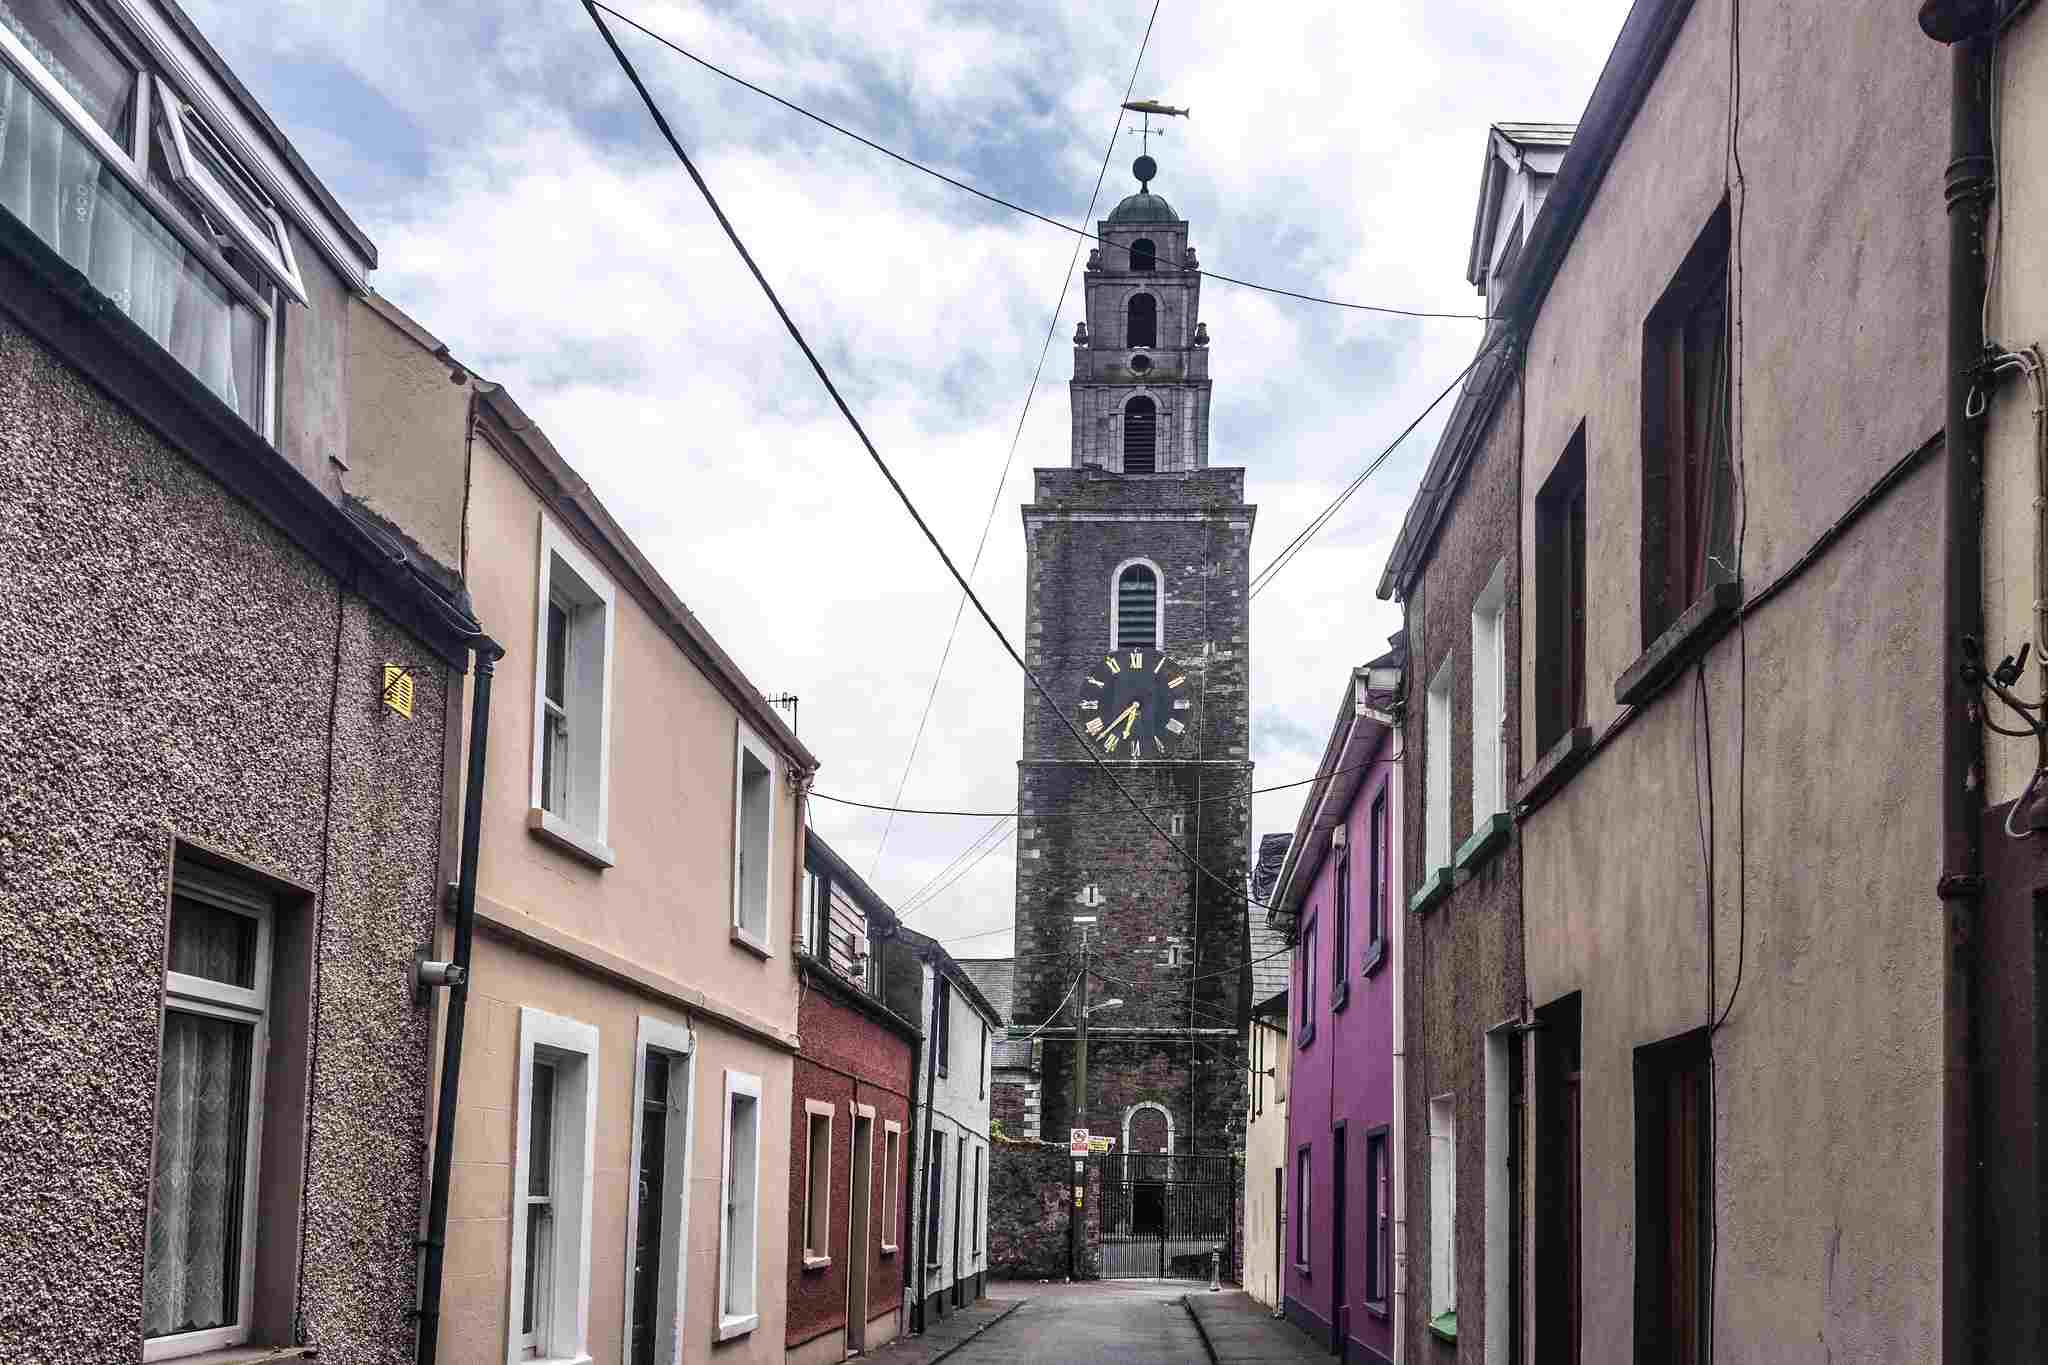 The bell tower of St. Anne's Church in Cork